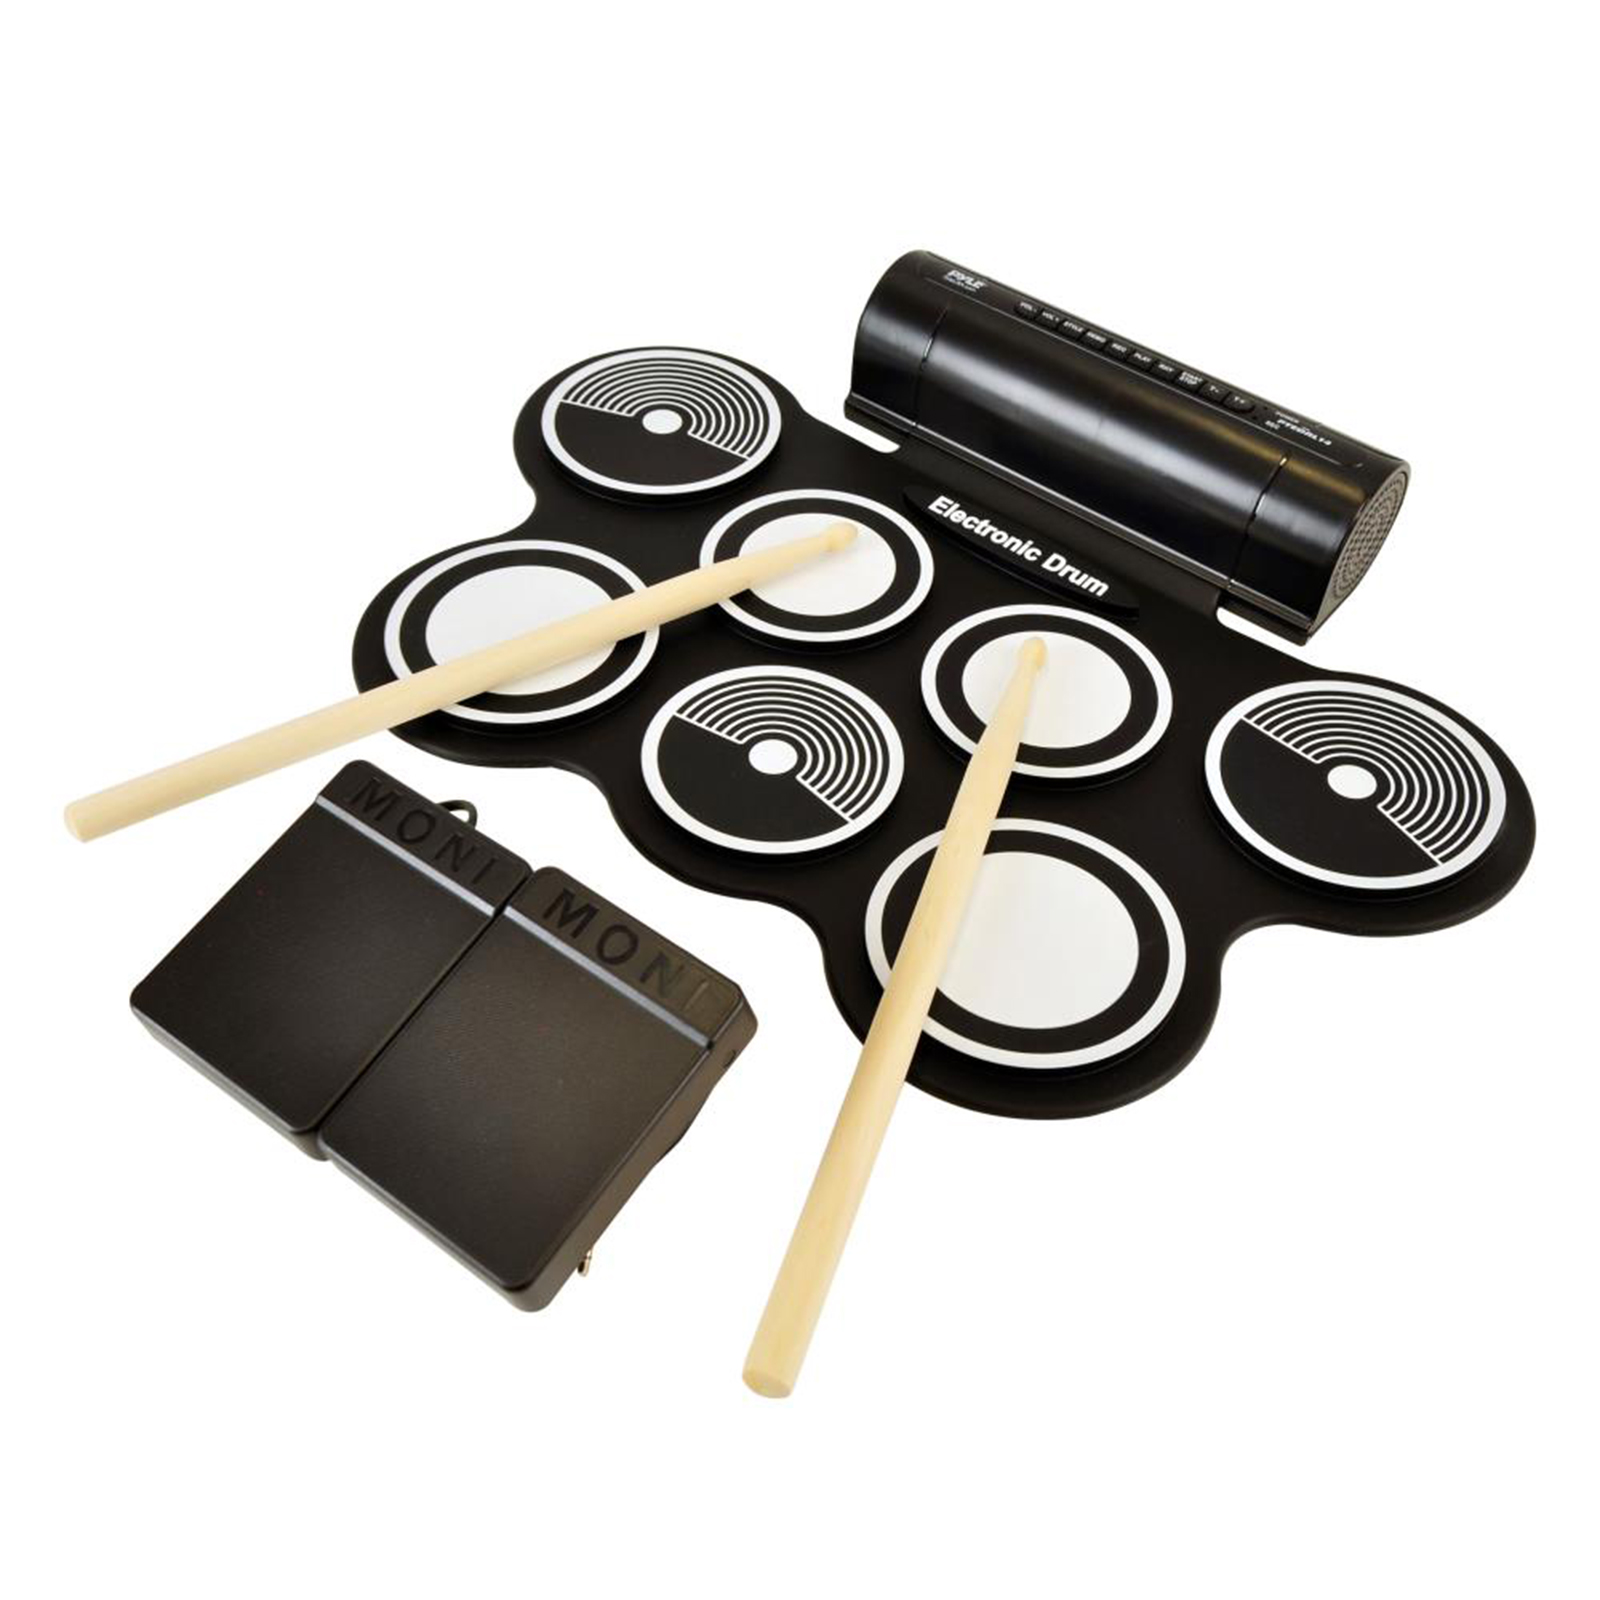 Electronic Drum Kit Compact Drumming Machine, Quick Setup Roll-Up Design by Pyle Pro